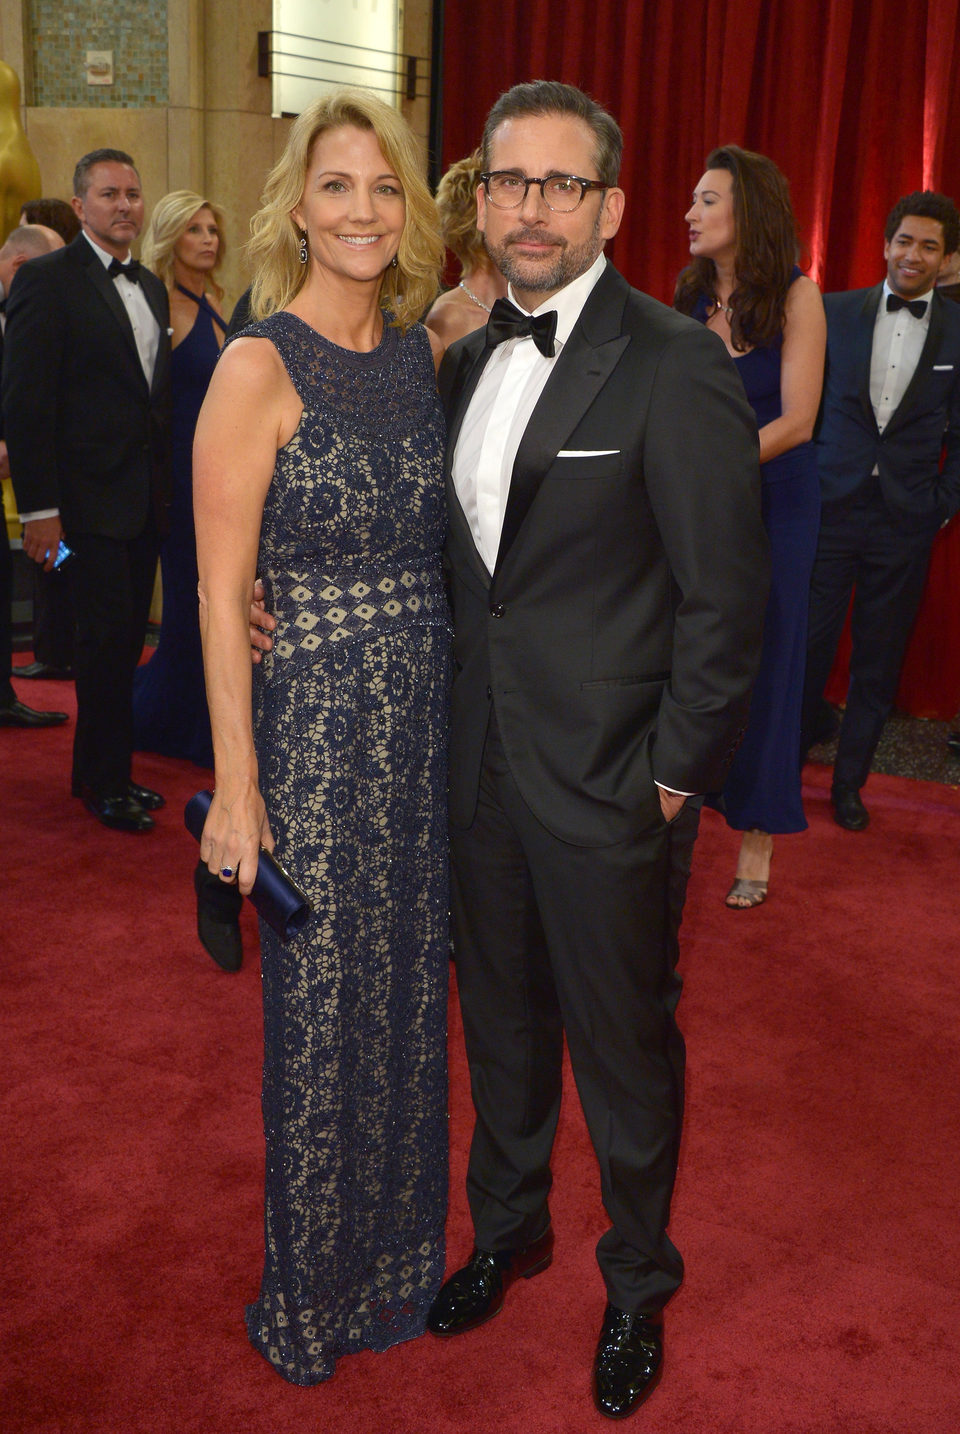 Steve Carell next to his wife Nancy Carell at the Oscars Awards 2015 red carpet